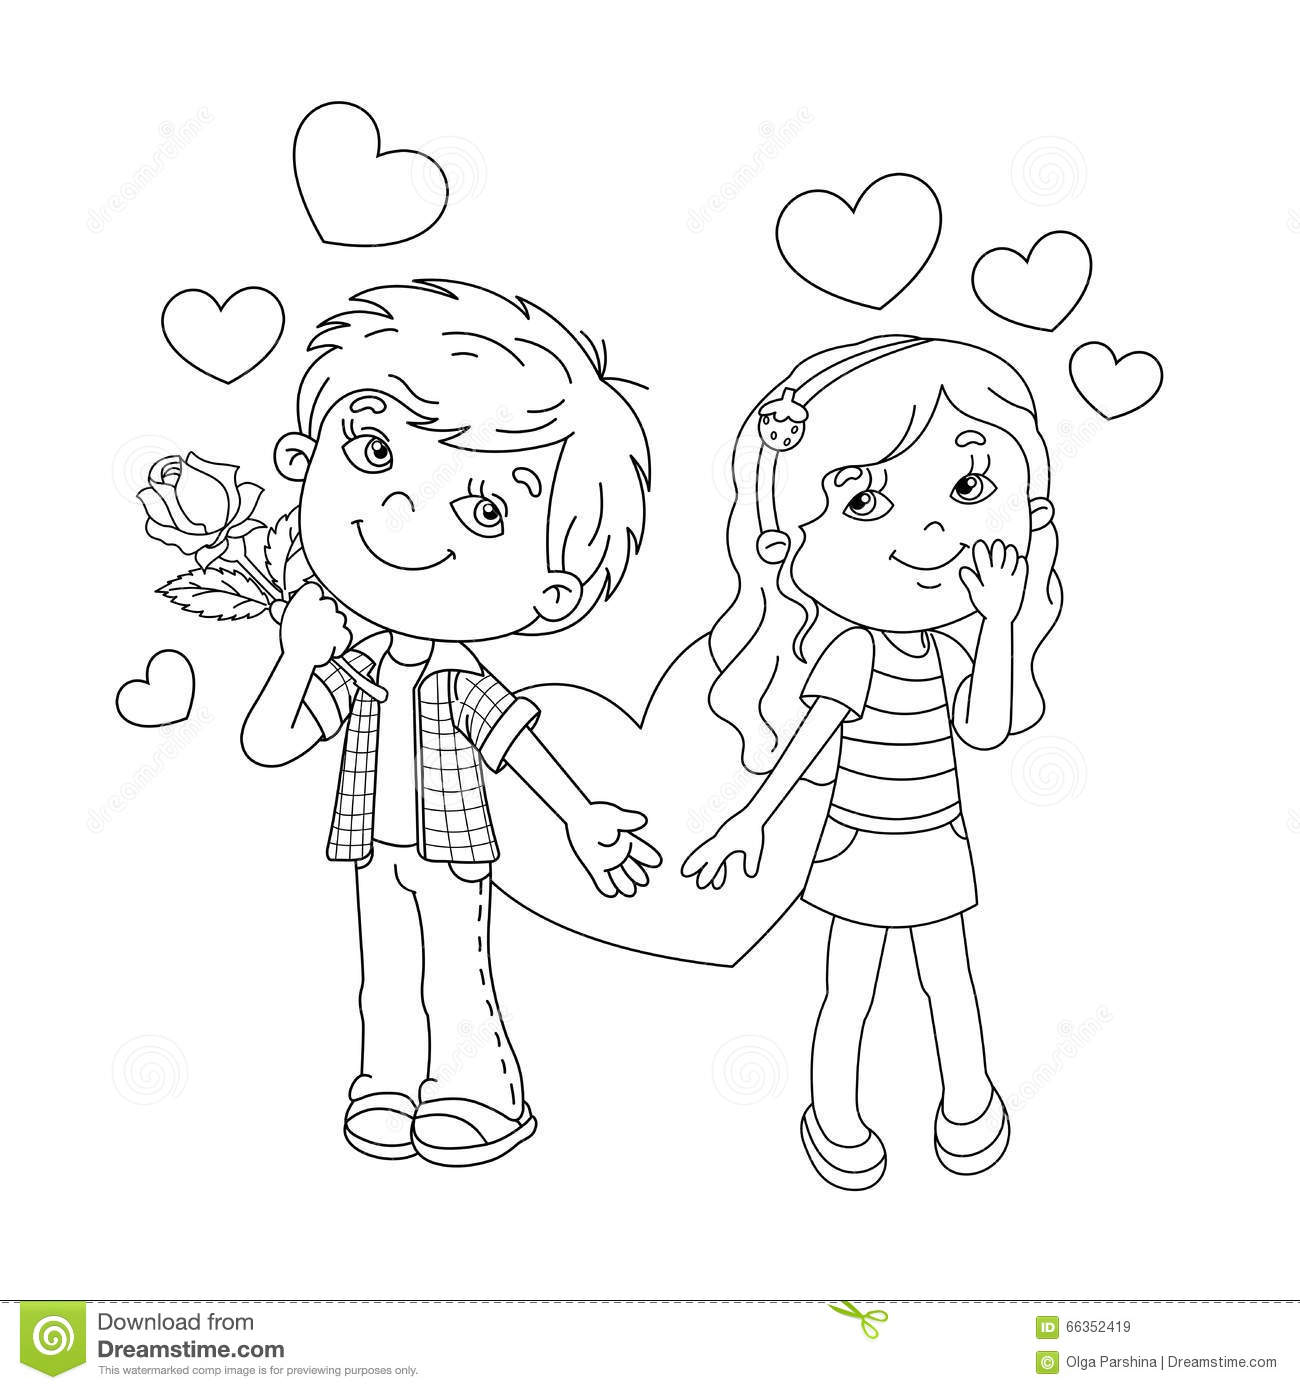 outline of a boy and girl coloring pages incredible design ideas coloring pages for boys and girls coloring boy and pages girl of outline a